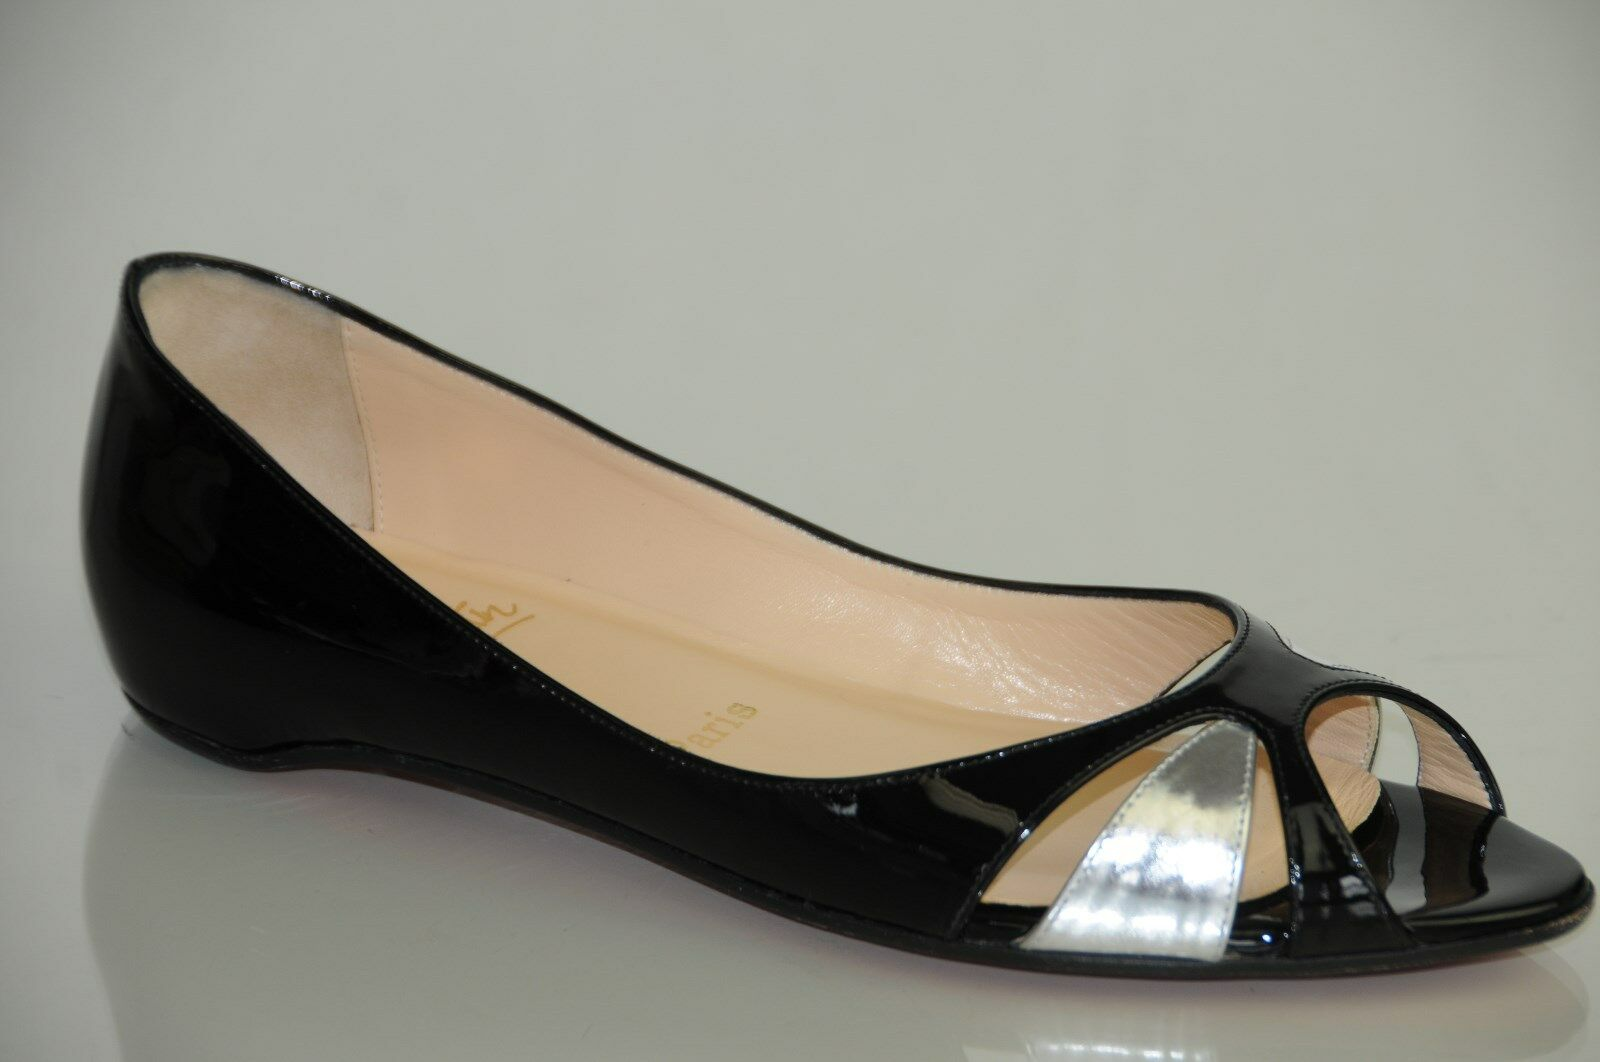 New CHRISTIAN LOUBOUTIN Black Silver Patent Tami Closed Open Flats SHOES 39.5 9